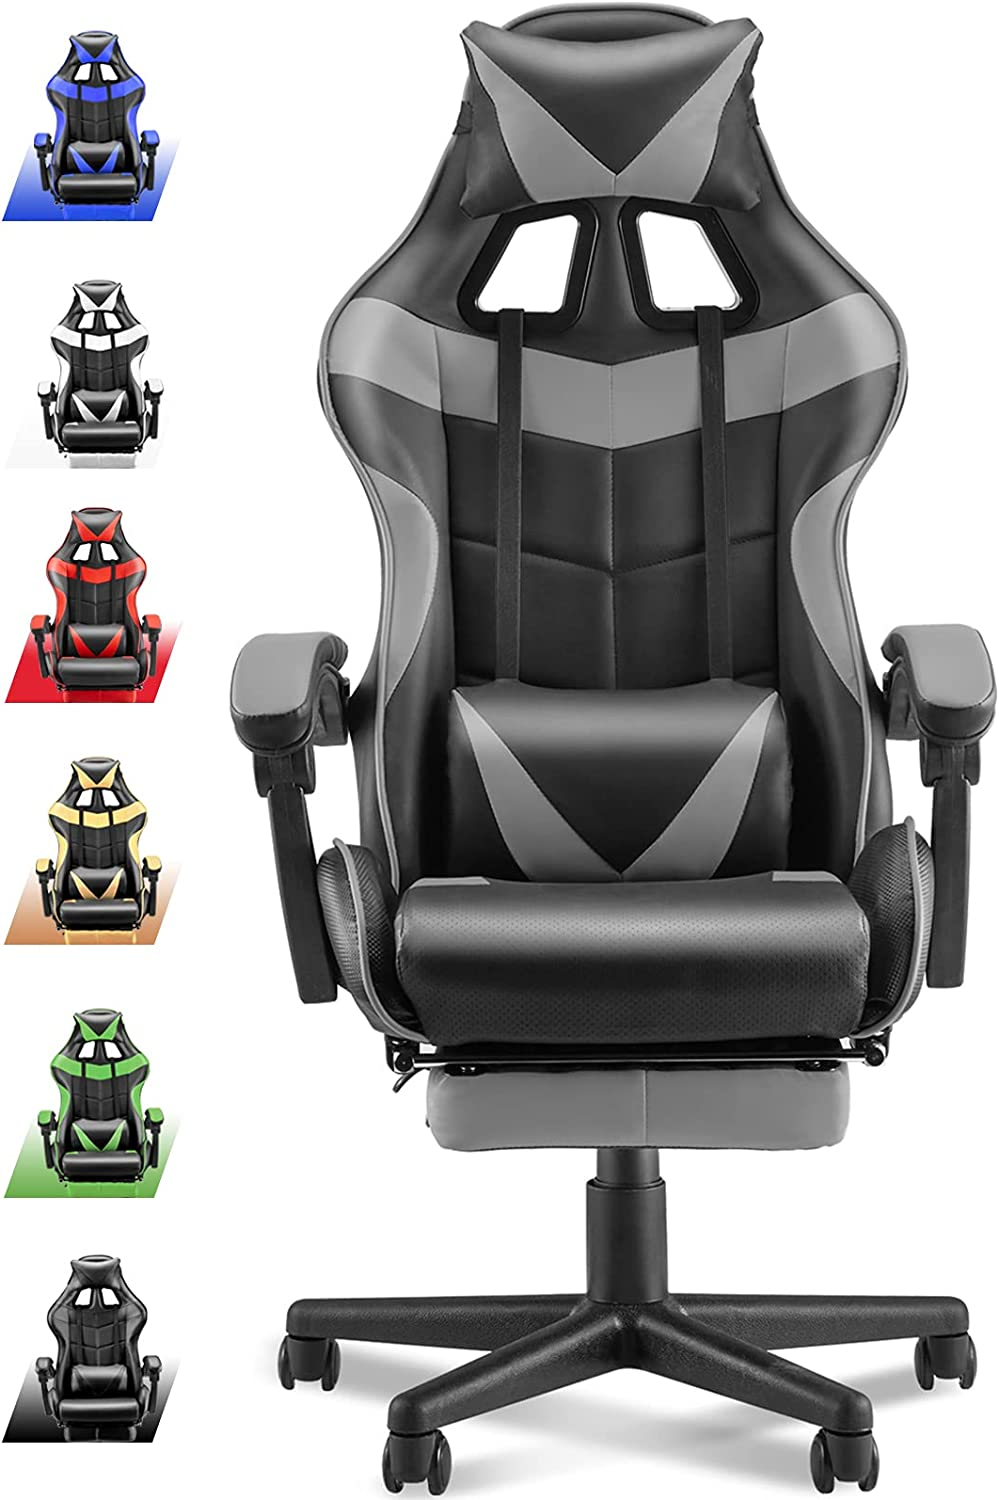 Soontrans Grey Gaming Chair with Footrest Review